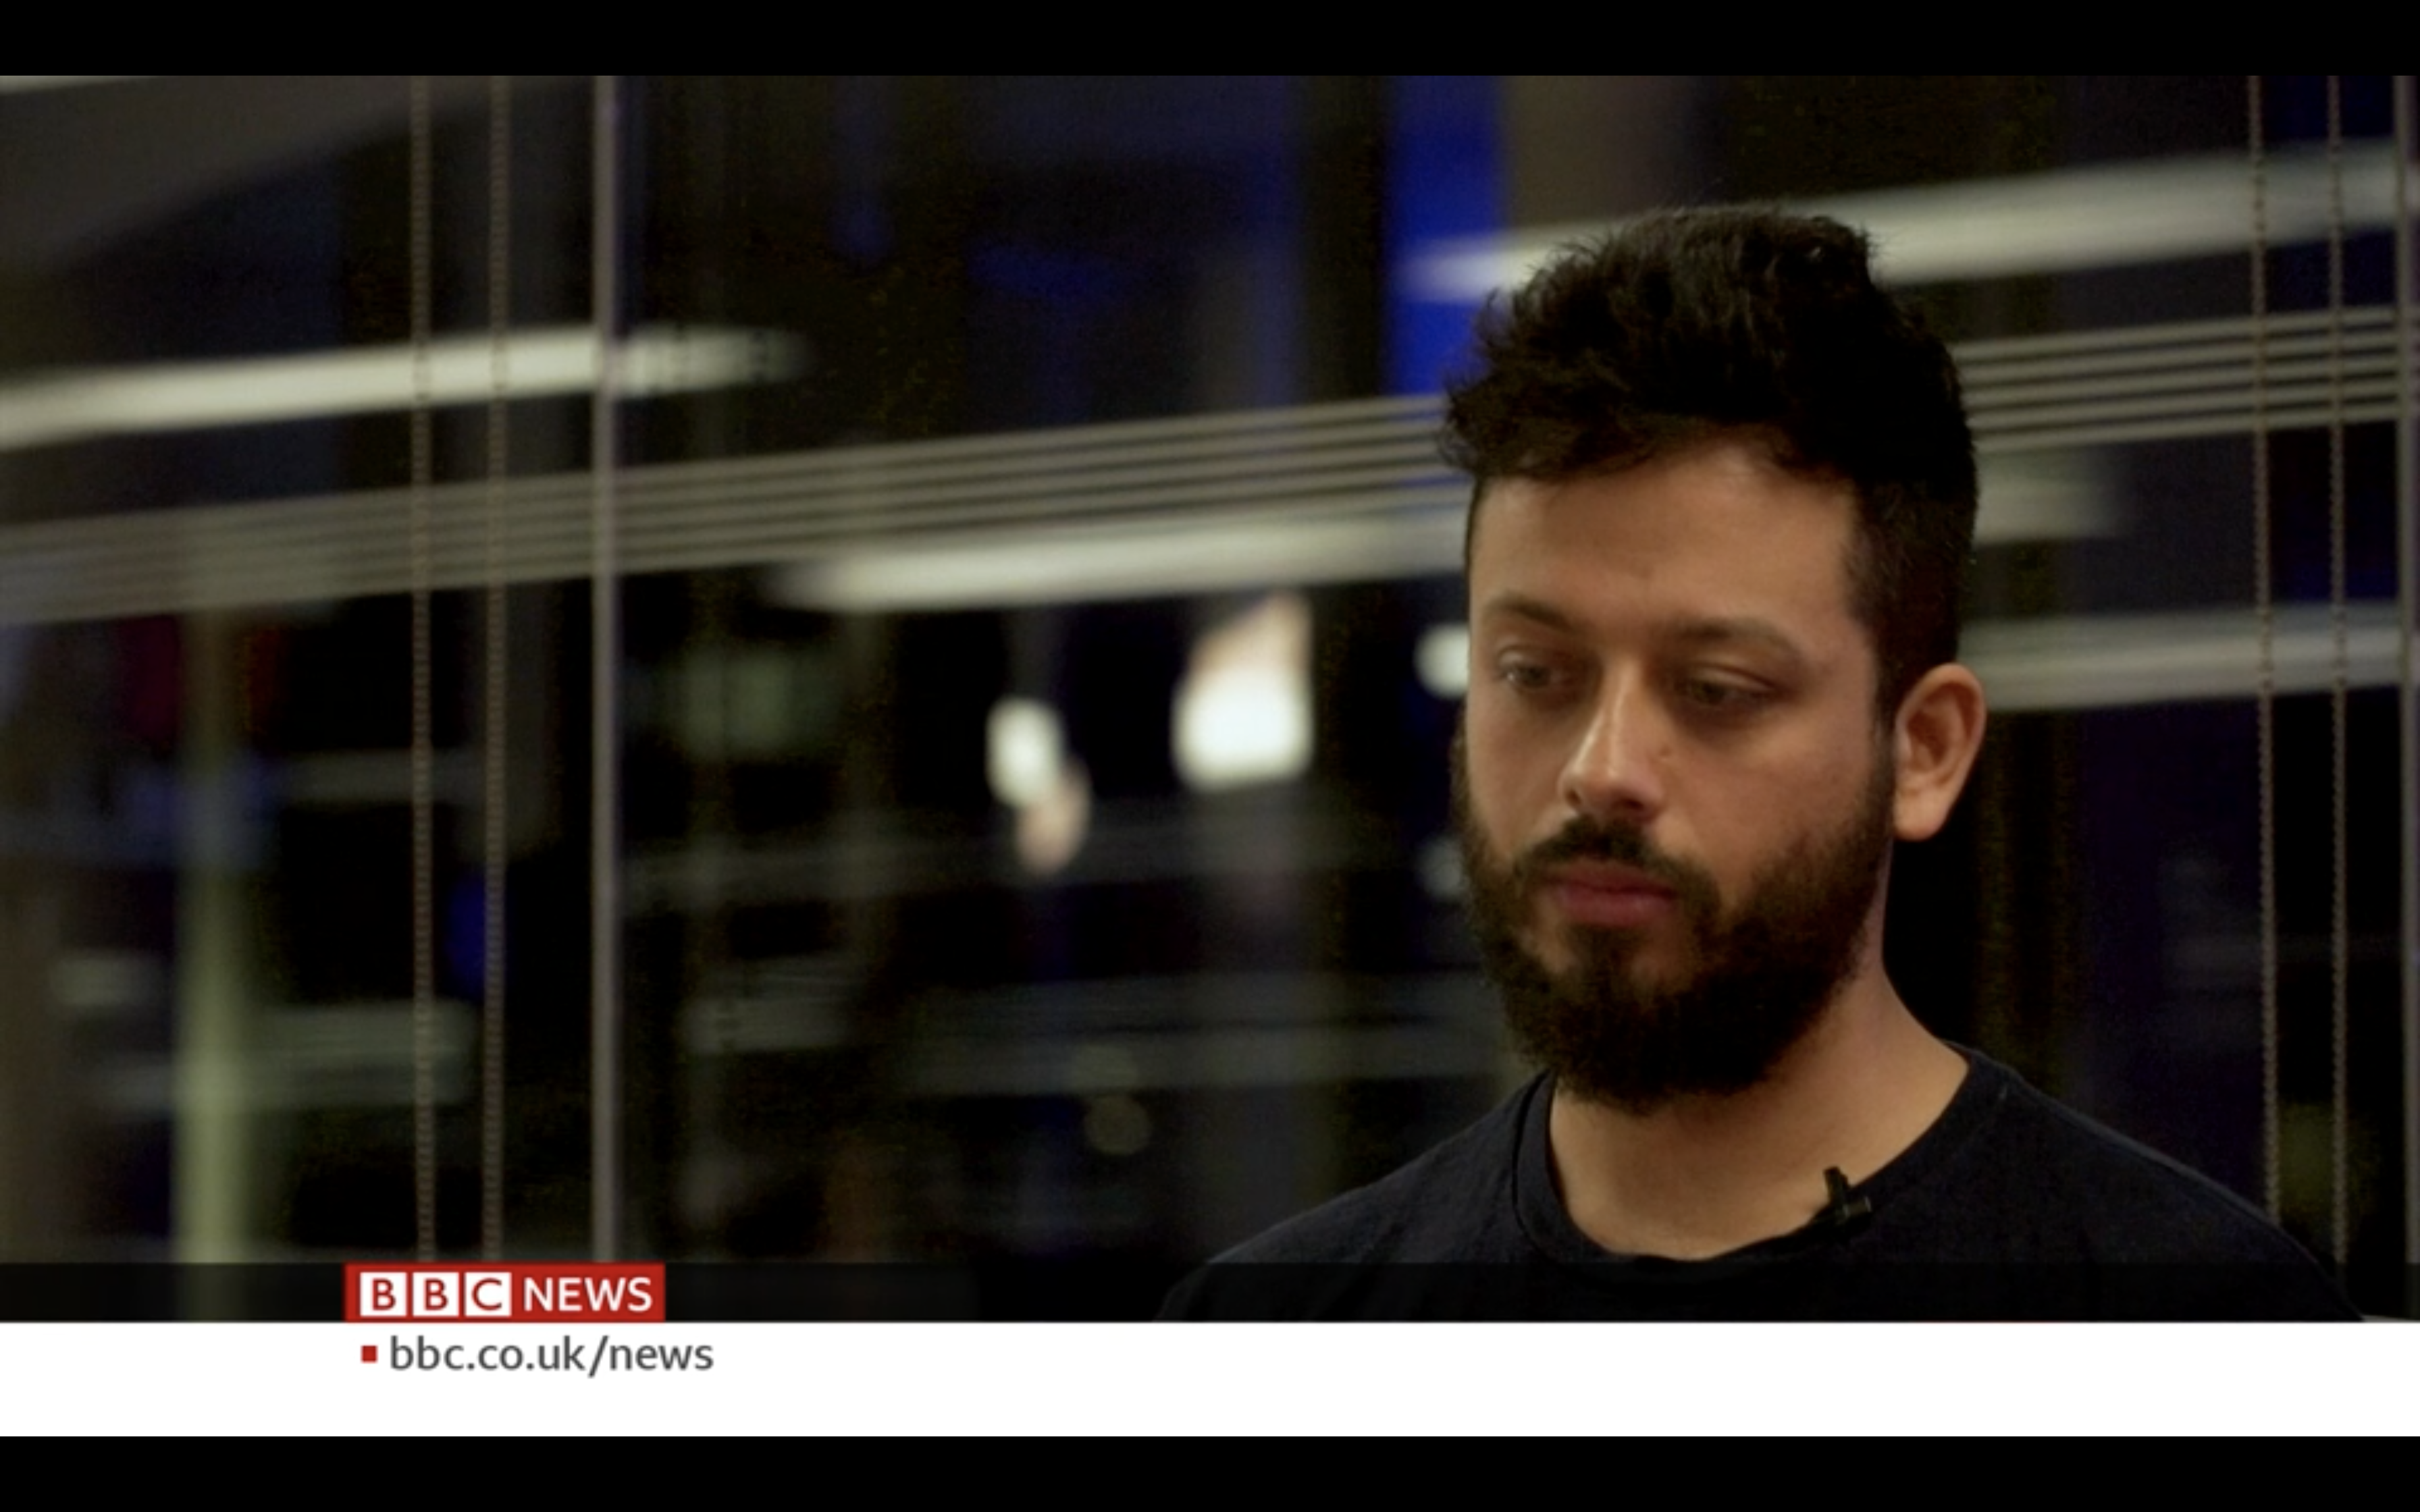 Craig Langran (2021) make TV debut with piece on facial recognition for BBC Click